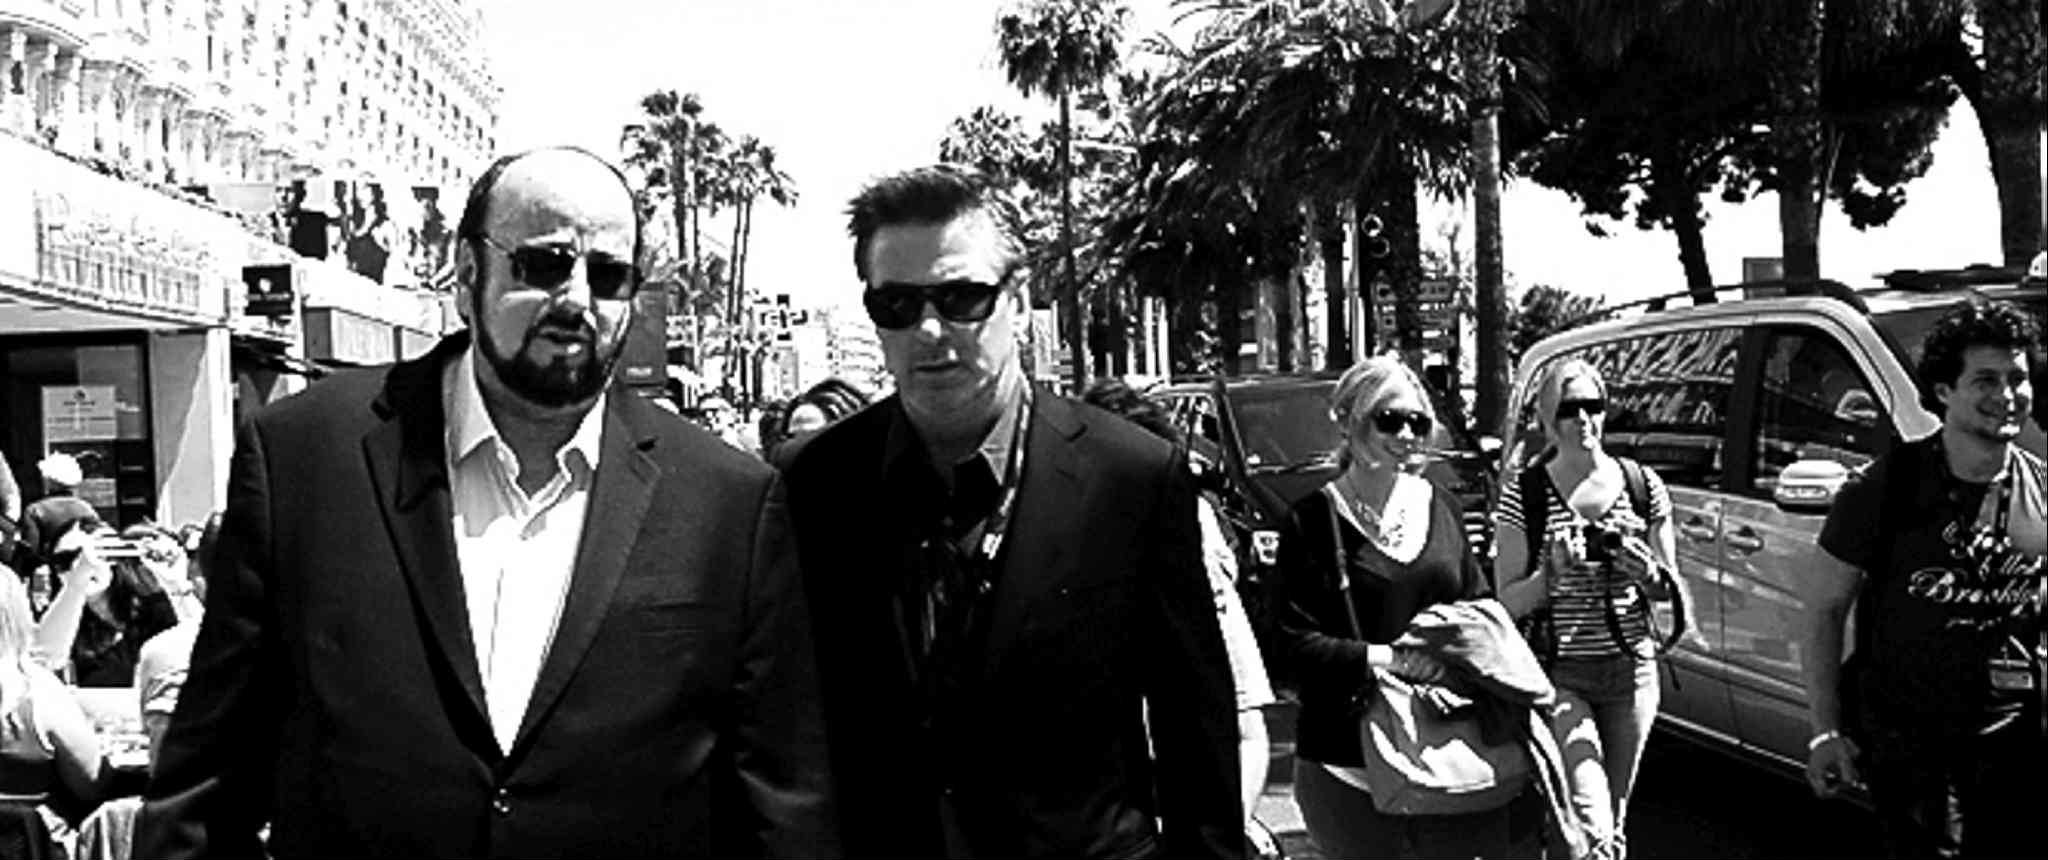 Toback (left)  and Baldwin search  for money  on the streets  of Cannes.